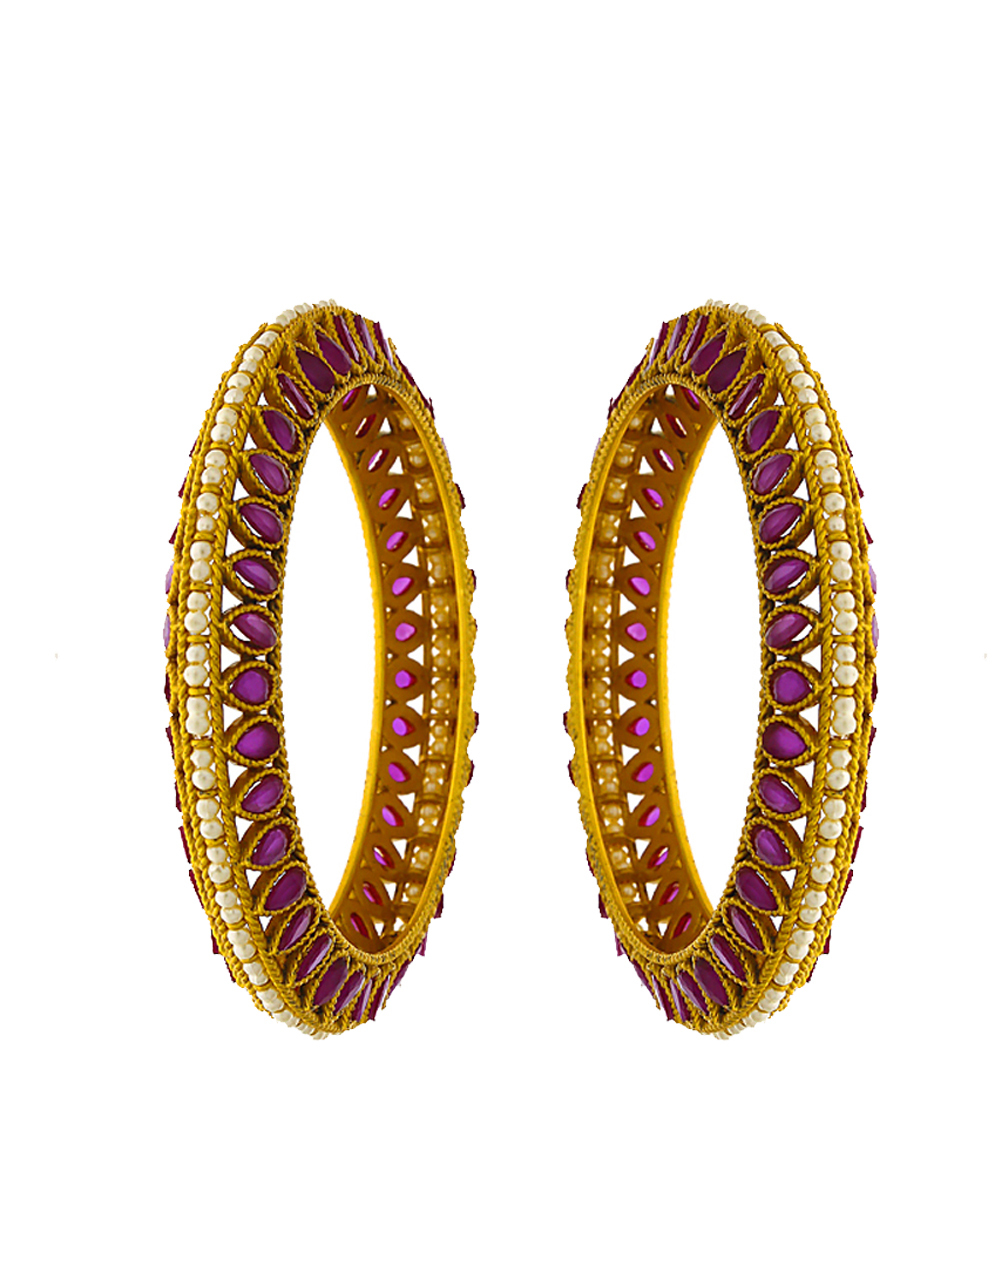 Royal gold finished studded with pink colour stones bangles for women